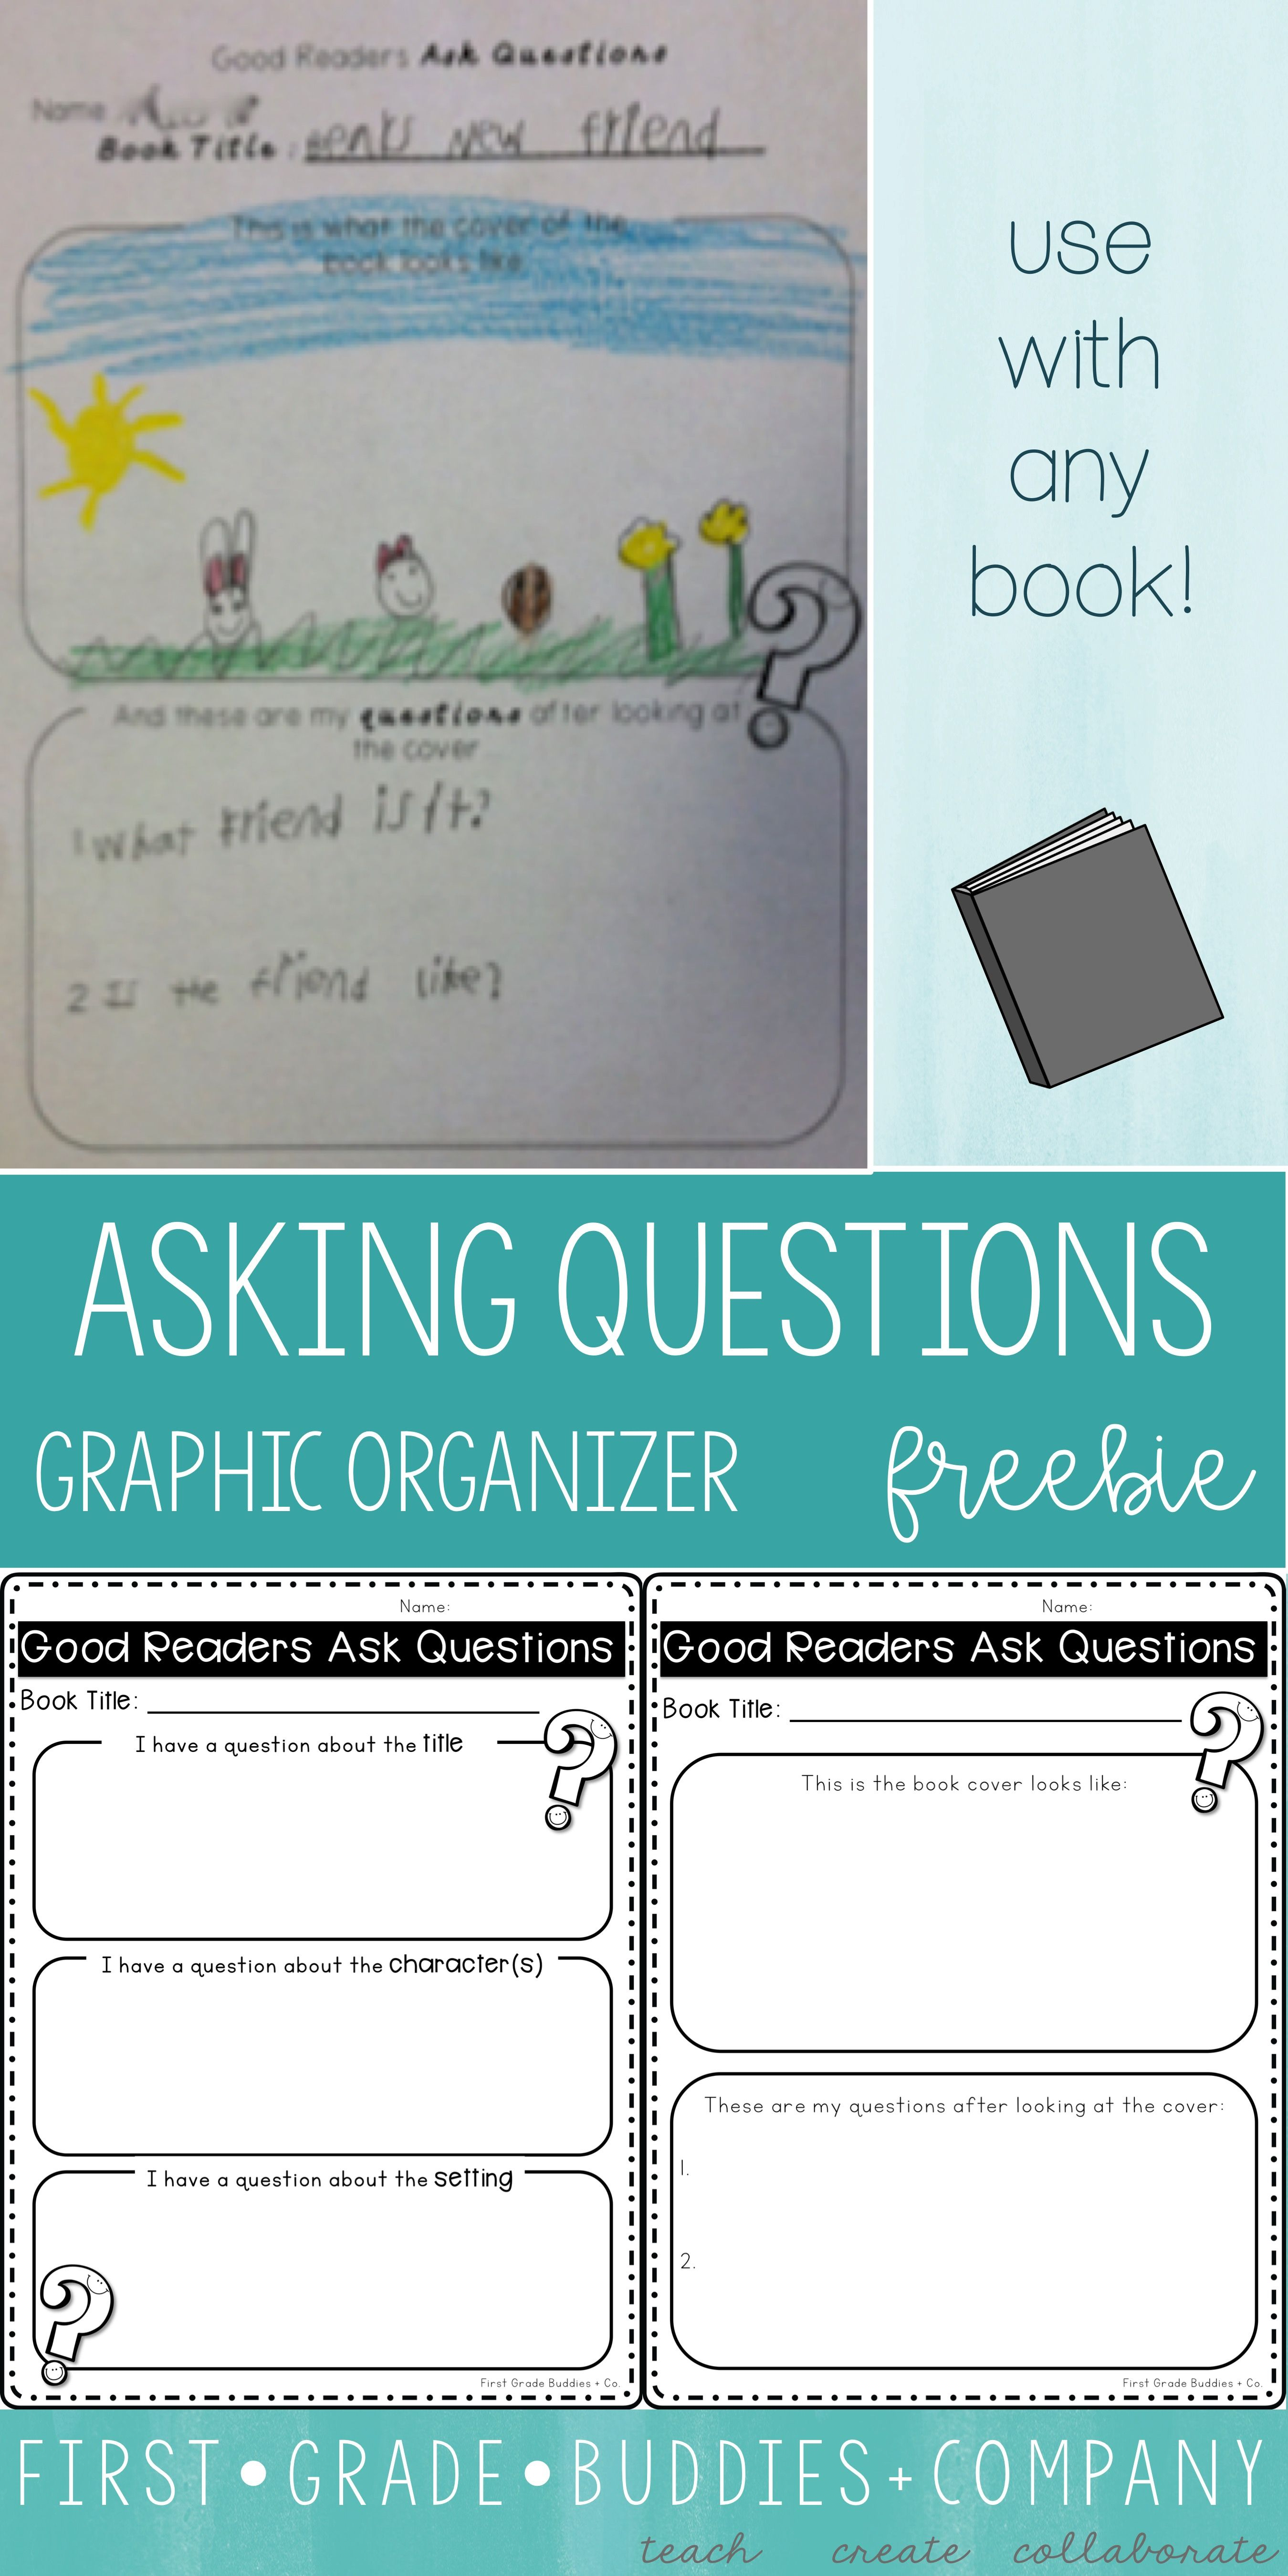 medium resolution of First Grade Buddies: Graphic Organizers for ANY Book! We created one great  big F…   Upper elementary reading